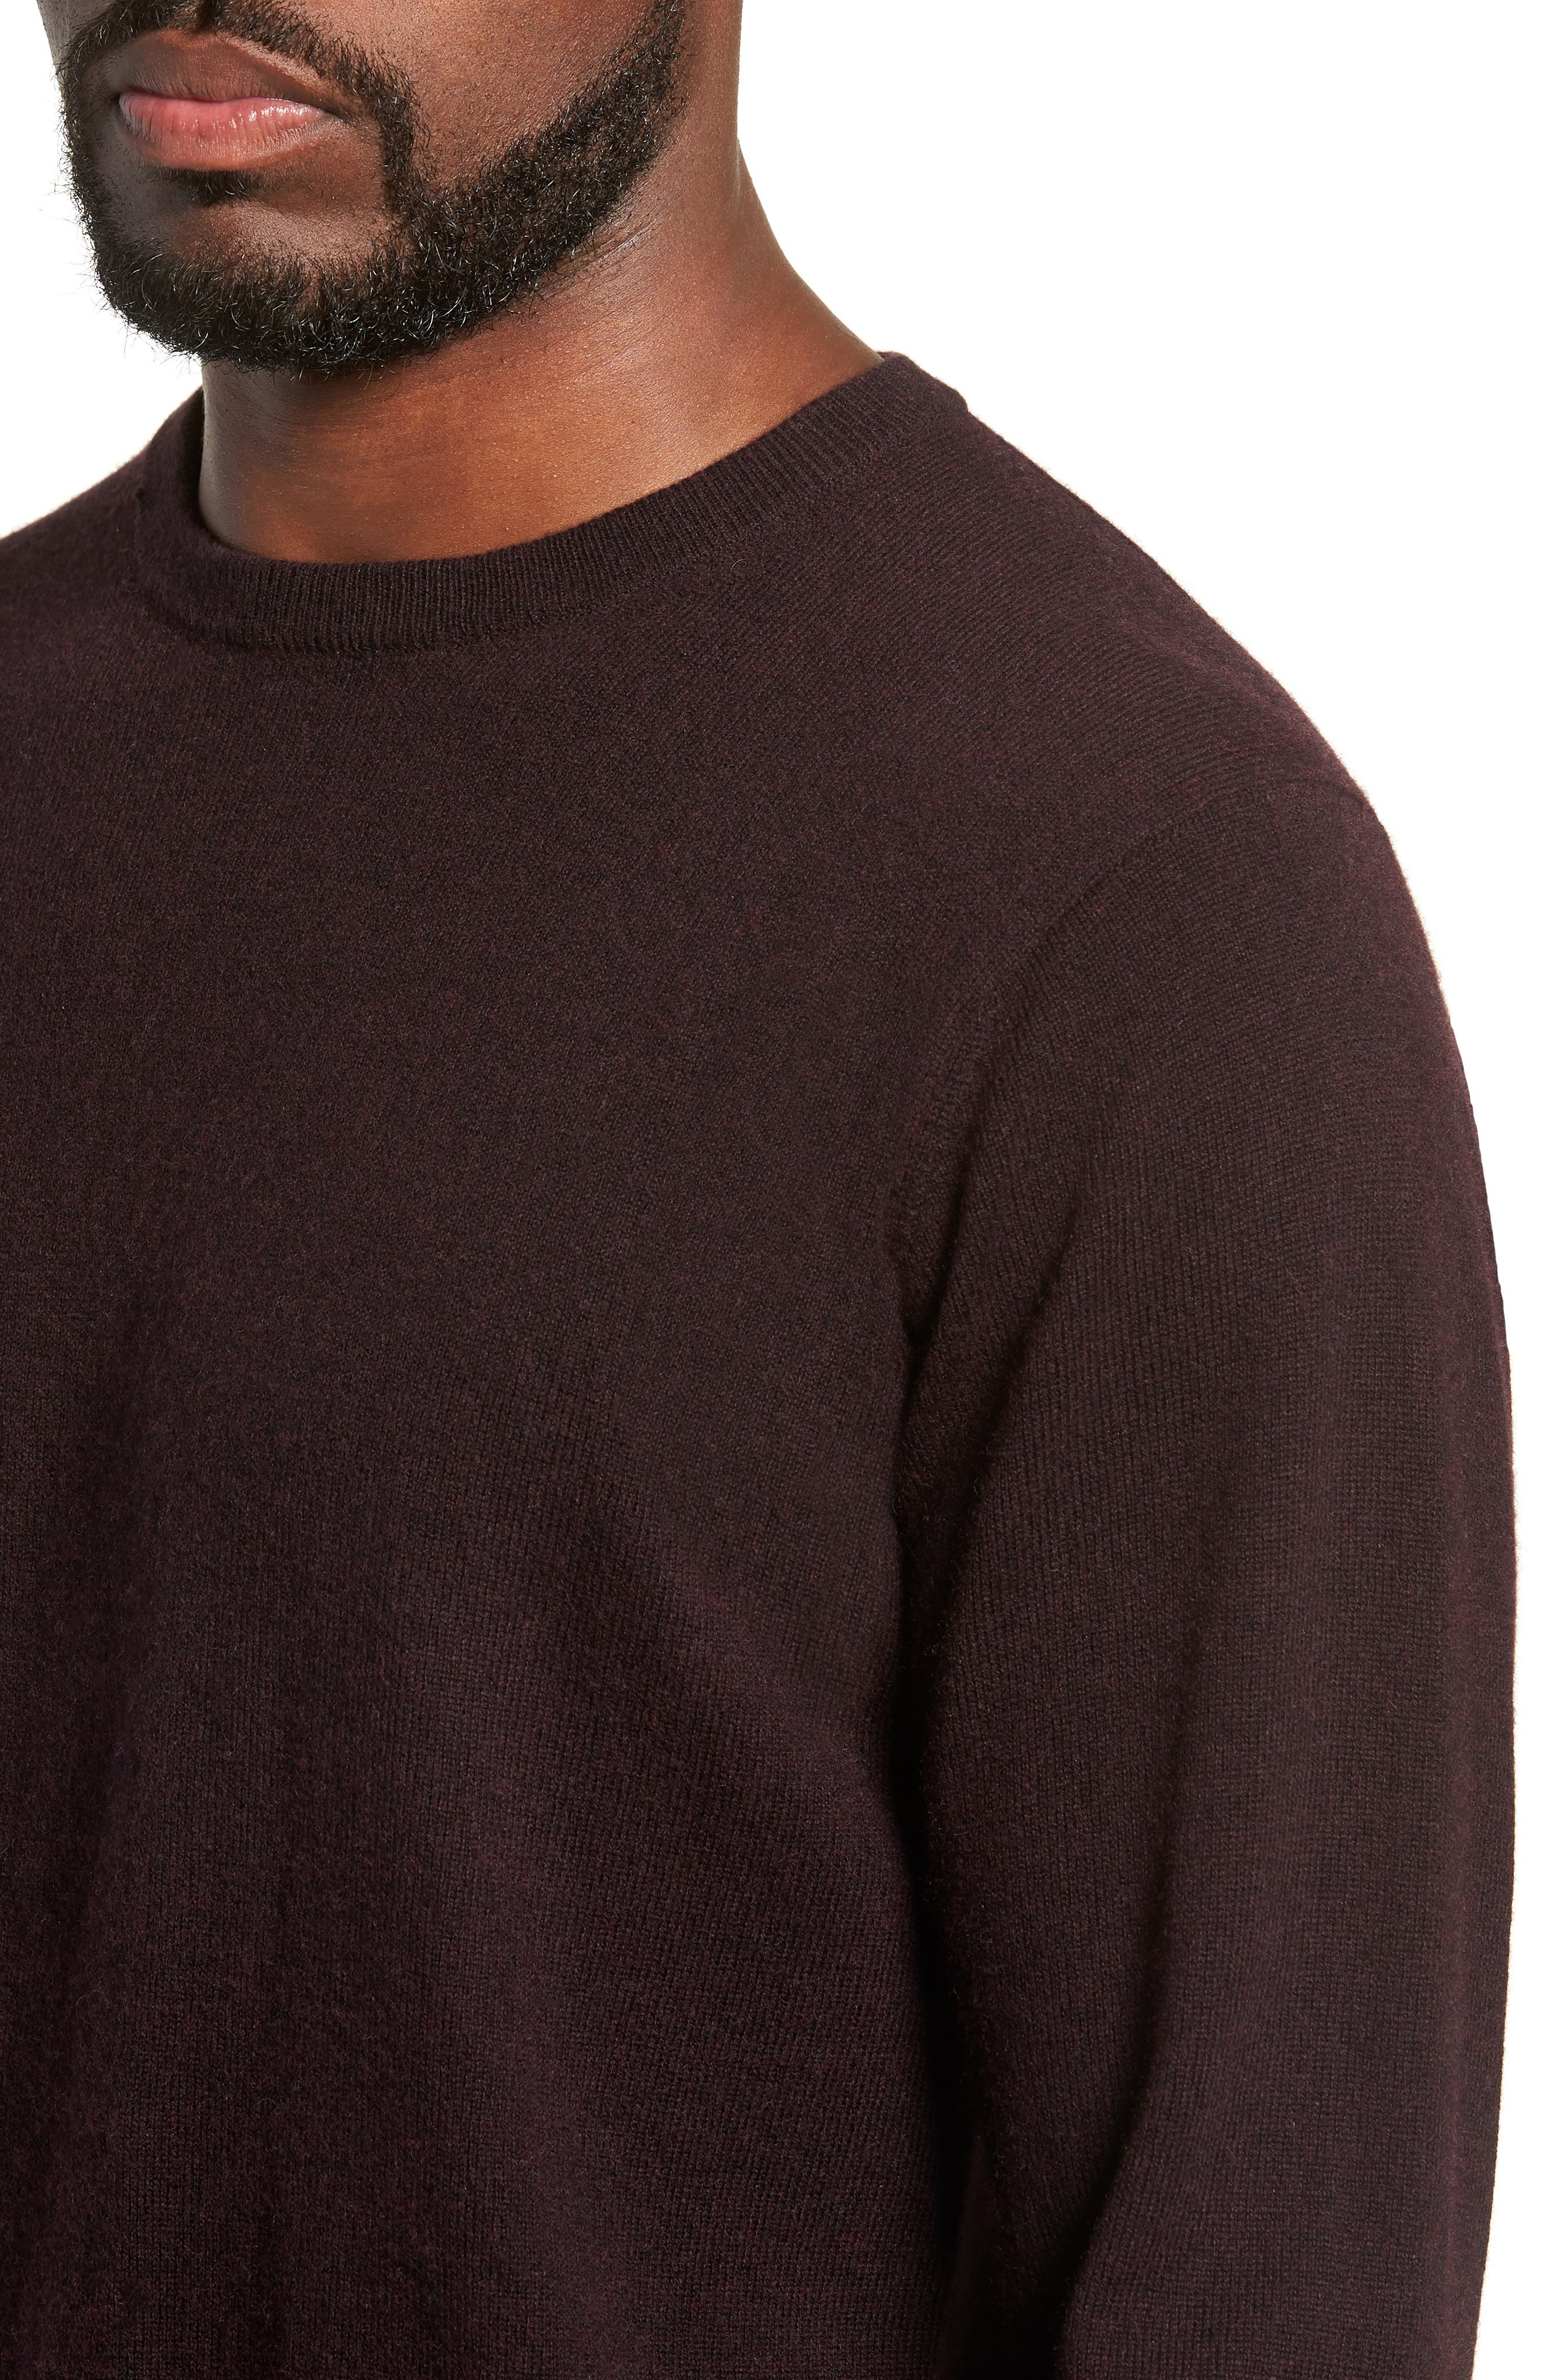 Queenstown Wool & Cashmere Sweater,                             Alternate thumbnail 4, color,                             BLACK FIG